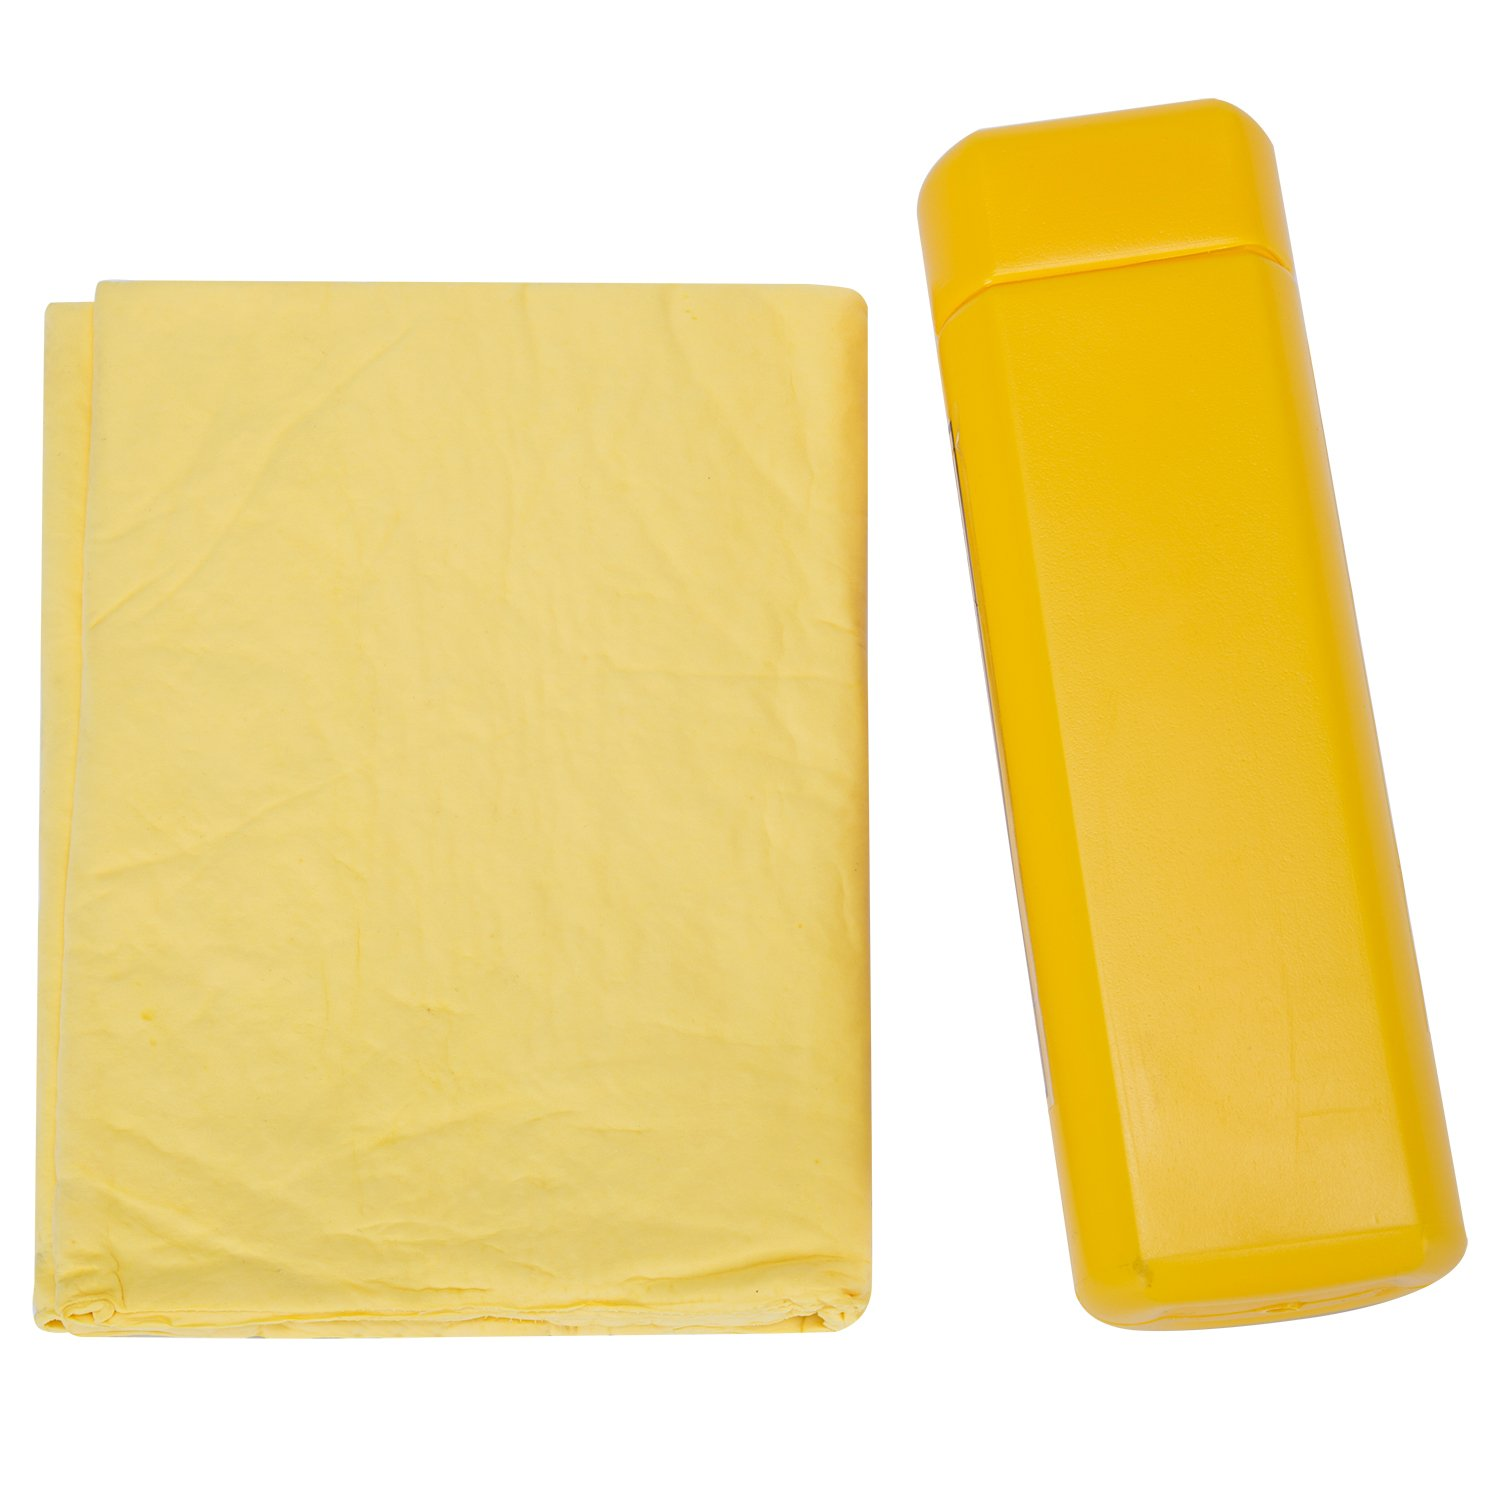 mens gift scratches LAOPOMI Suede ultimate towel fast drying your car or truck